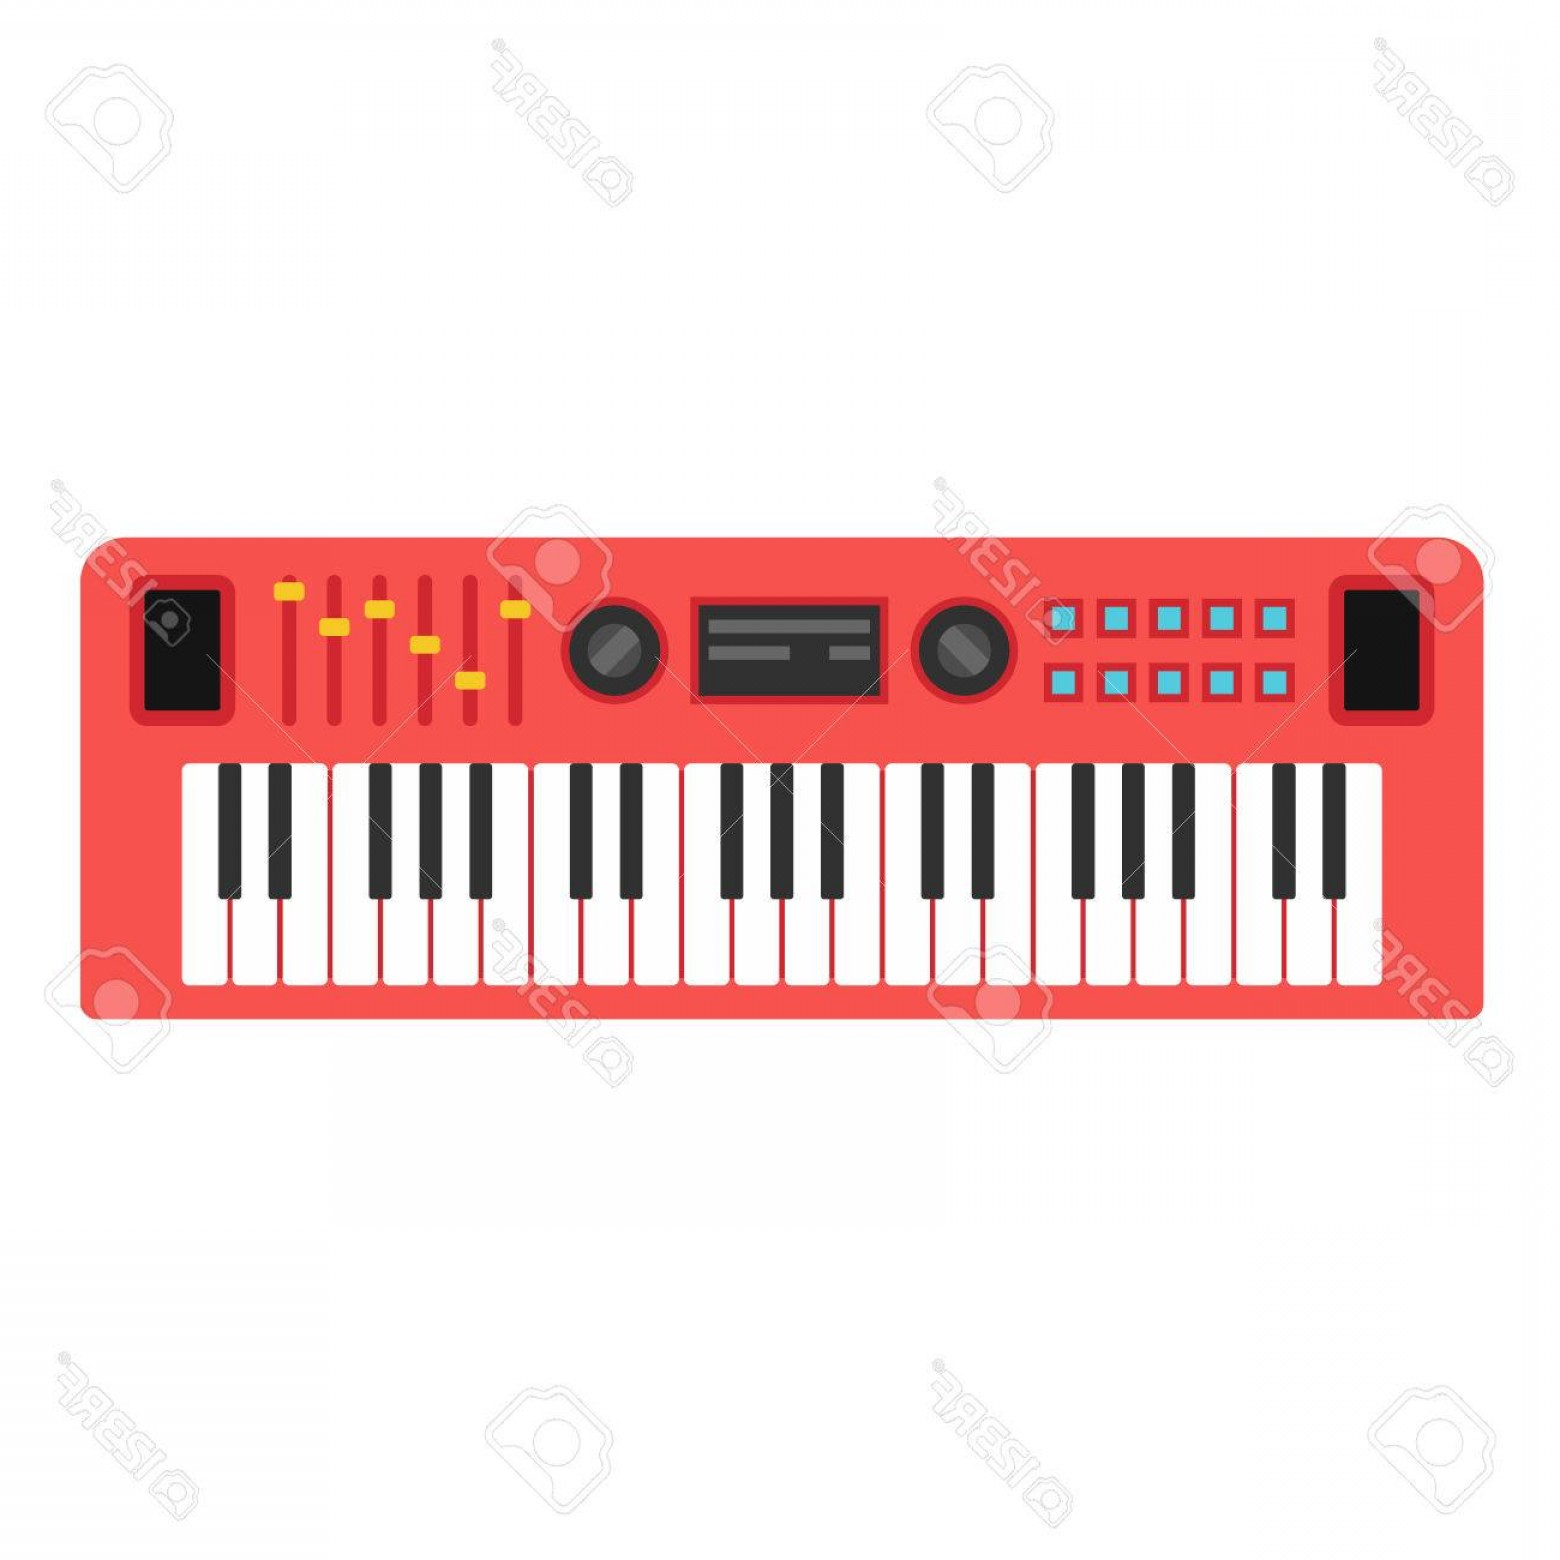 Musical Keyboard Vector: Photostock Vector Music Synthesizer Sound Musical Piano Keyboard Flat Style Vctor Illustration